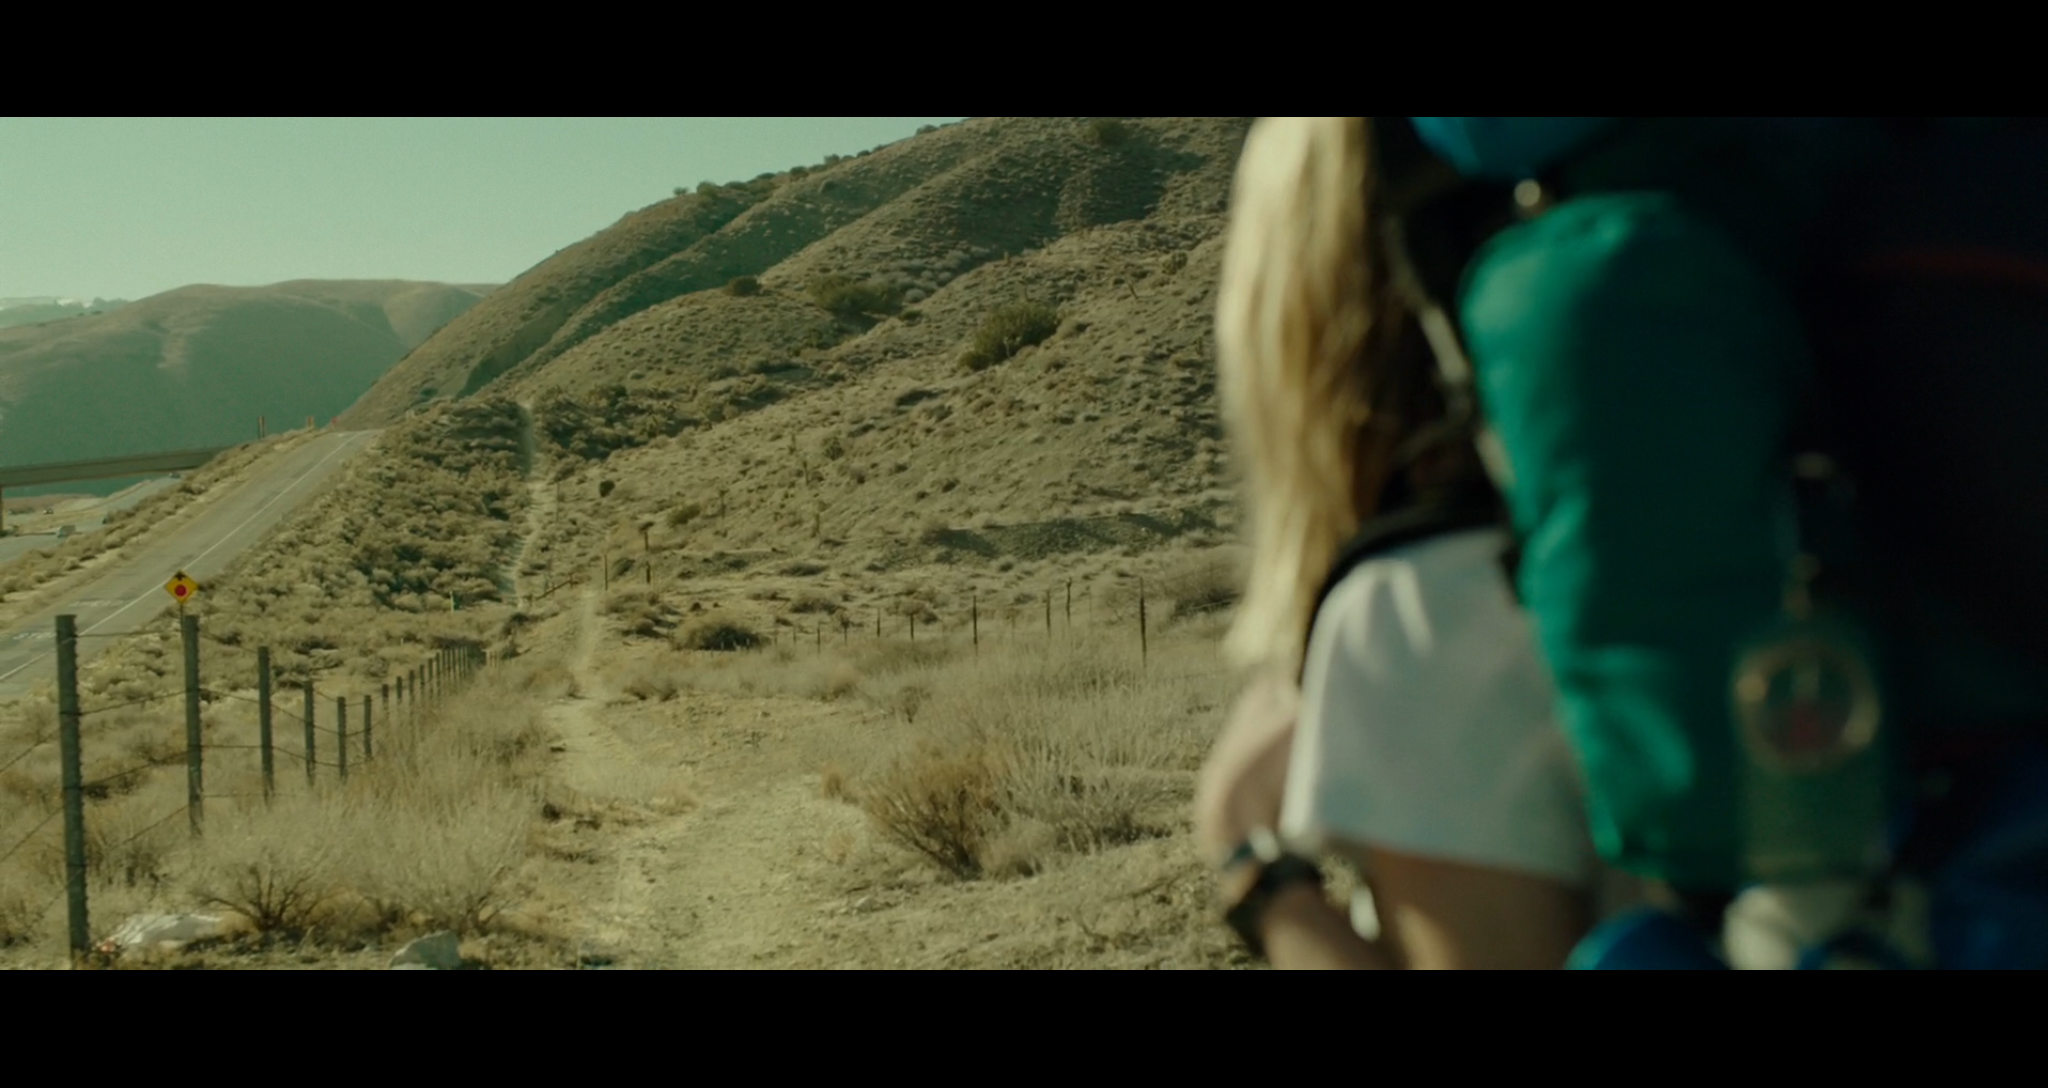 Screenshot from a scene in Wild where Cheryl (Reese Witherspoon) is on the Pacific Crest Trail section near the highway in the Mojave Desert at the beginning of her journey. Filmed on location on the PCT in the Mojave Desert, California.